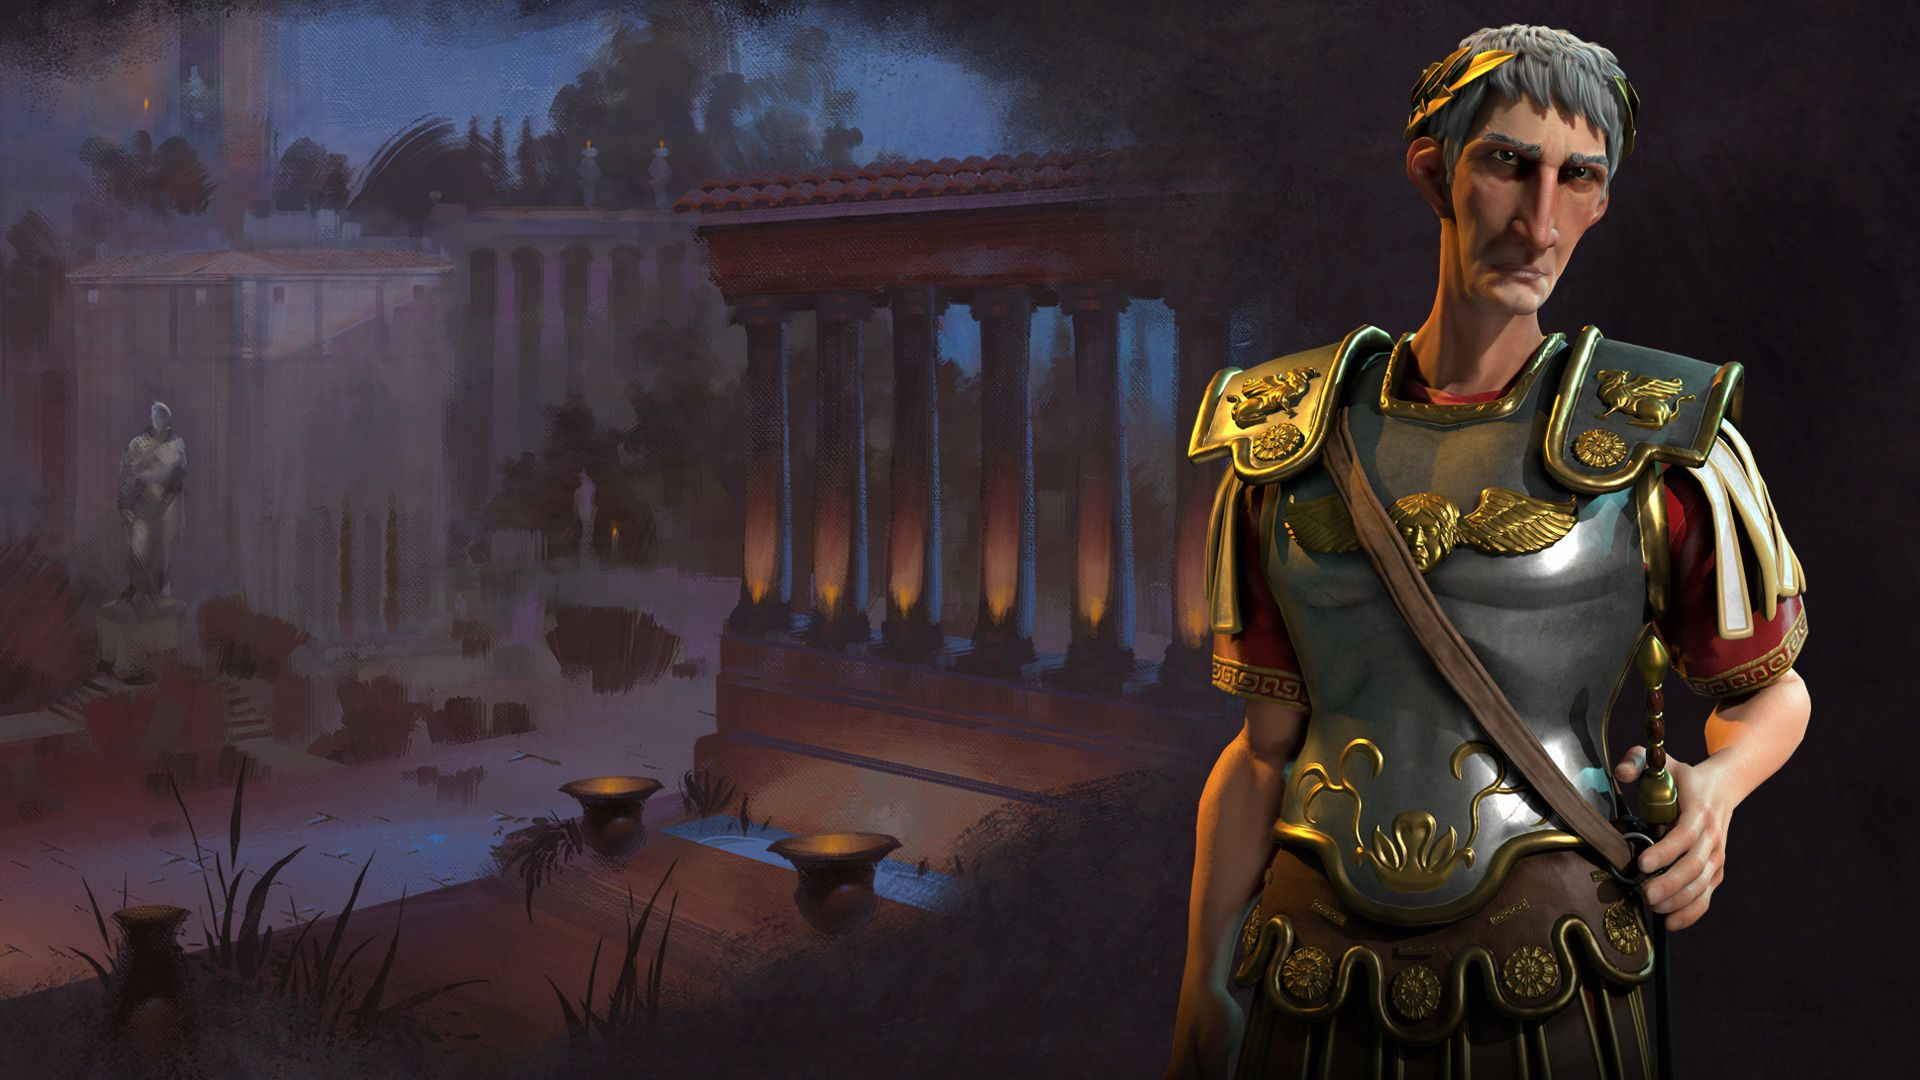 Hannibal vs Traján - Stránka 2 CivilizationVI_Rome_Trajan_hero